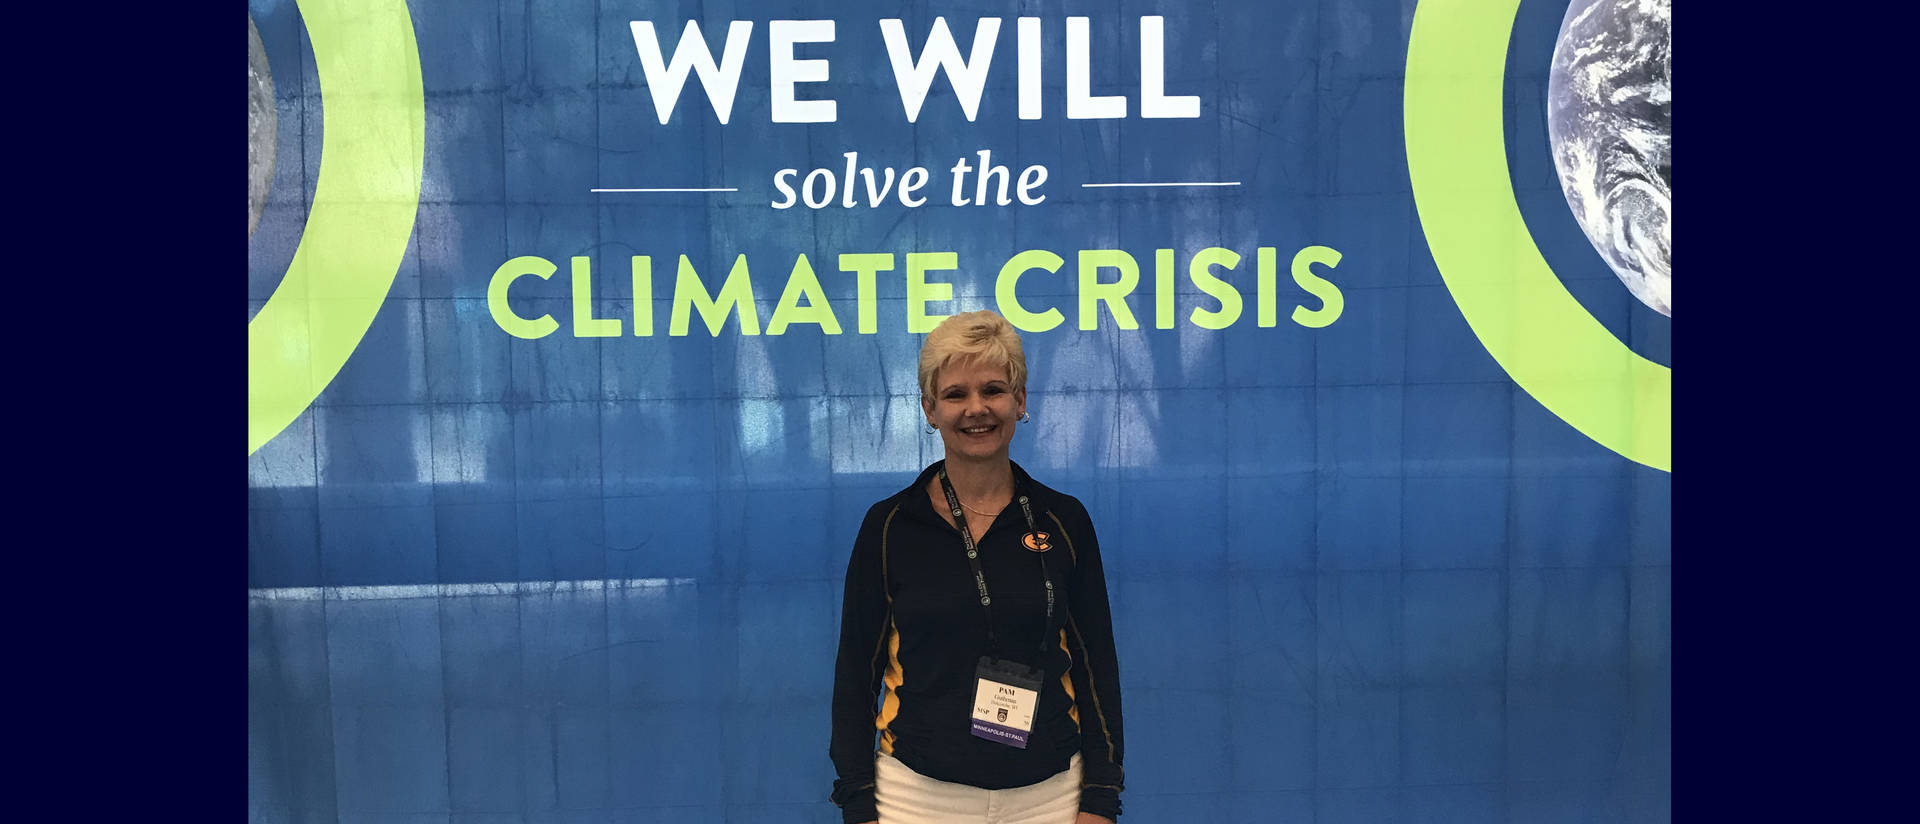 Pamela Guthman at climate conference